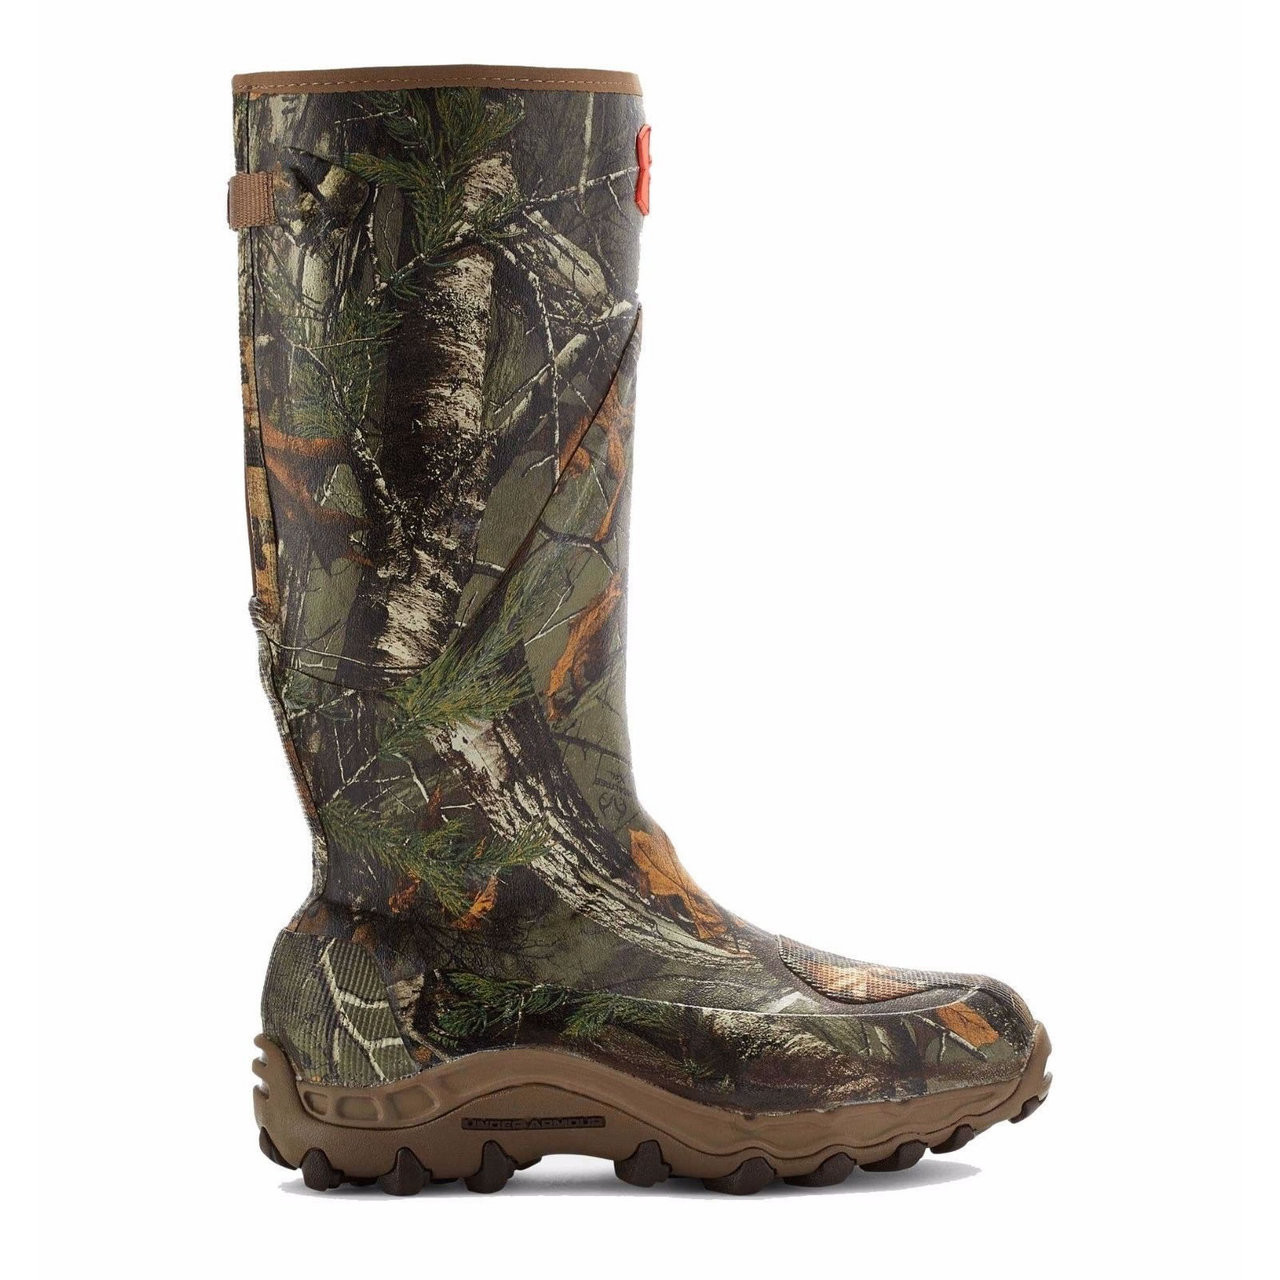 71274dfc6ee Under Armour Haw'madillo Camo Rubber Mud Boots 1250121-946 Realtree Xtra